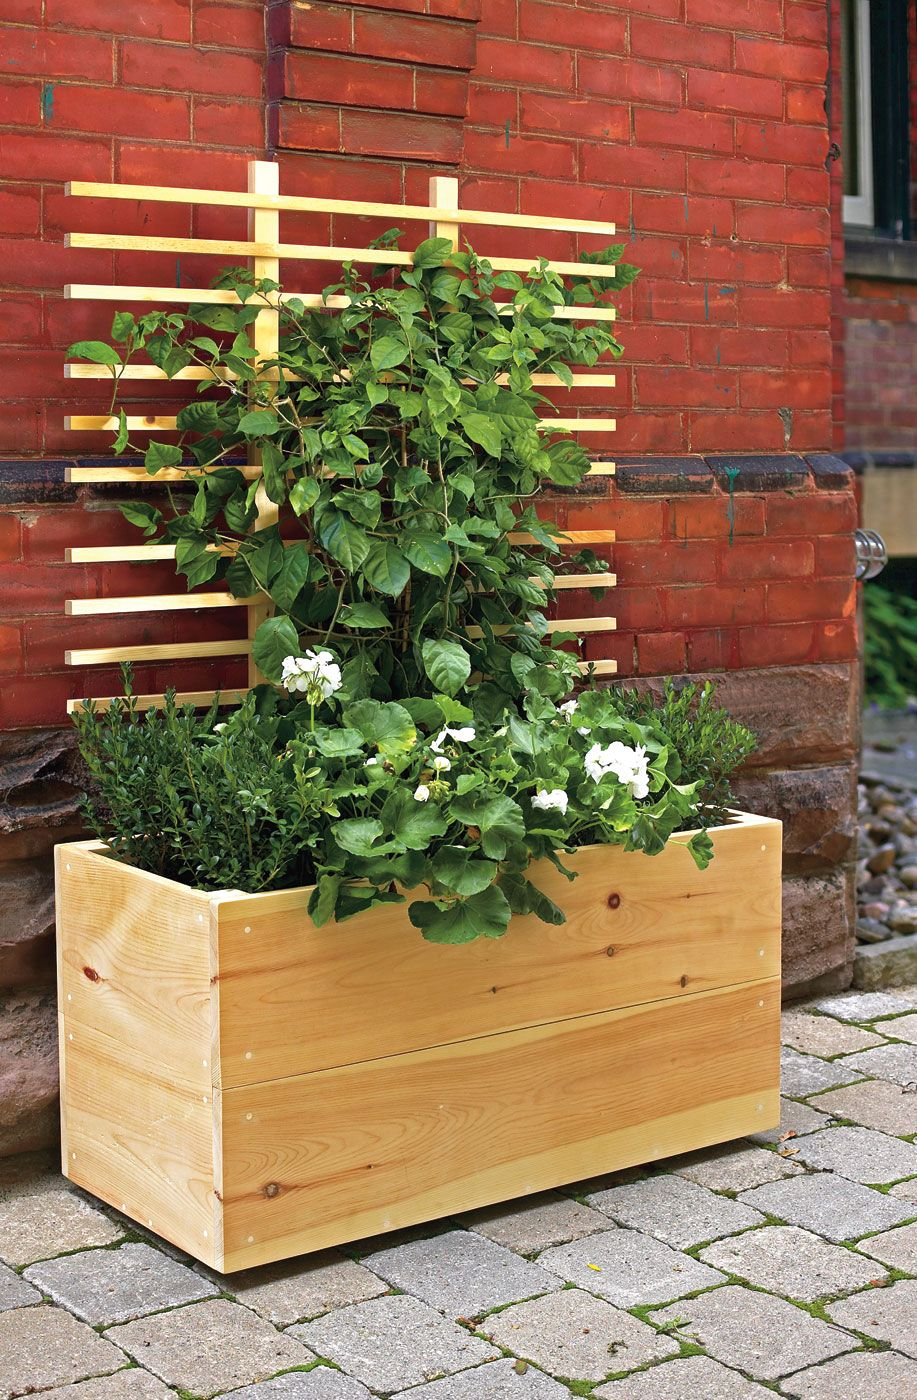 Home & Garden Pea trellis, Contemporary gardens and Bed